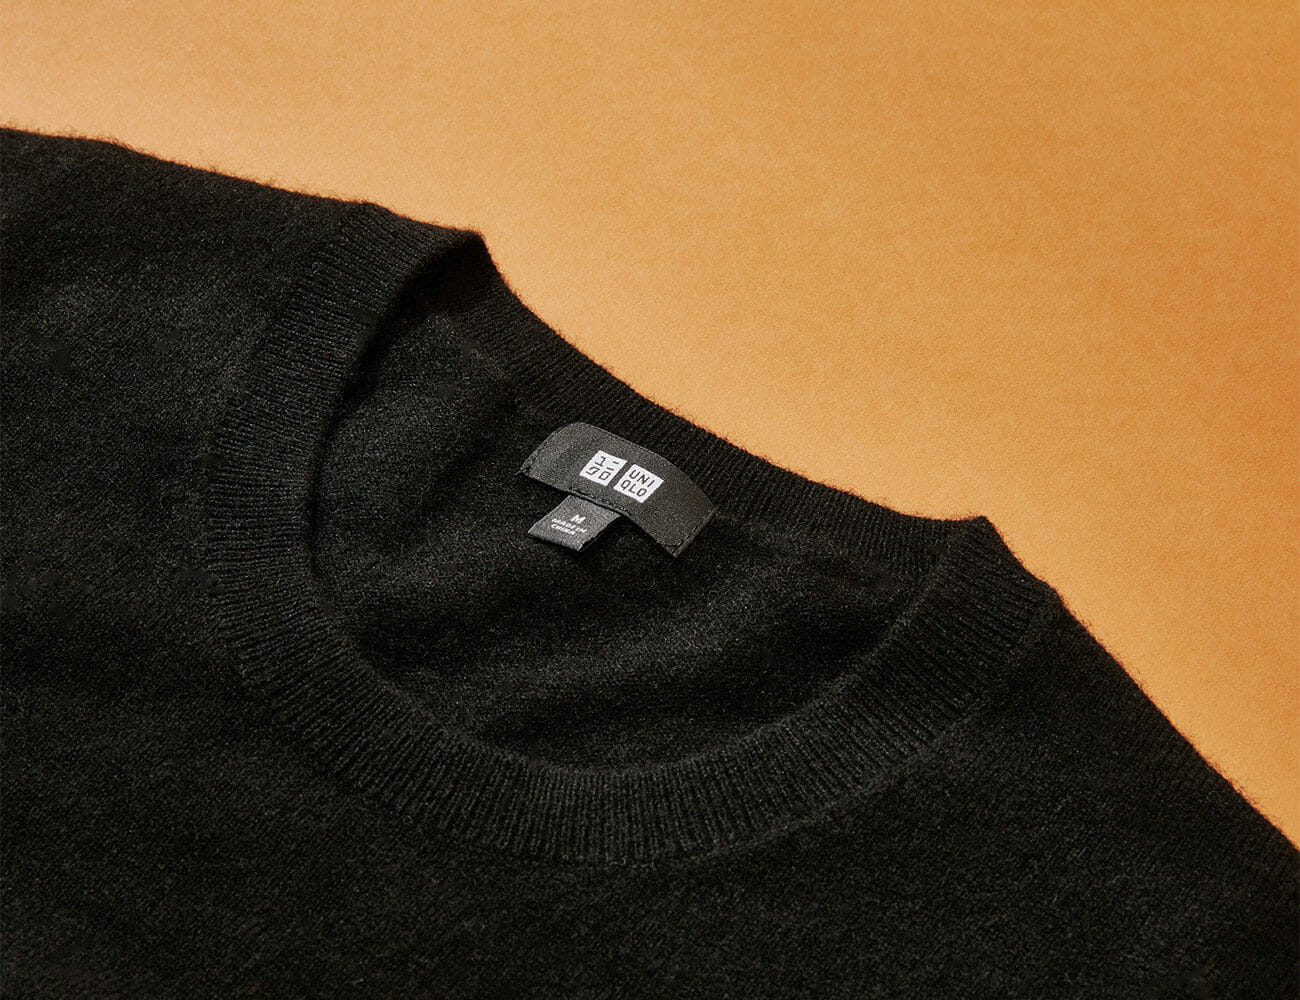 The-Best-Cashmere-Sweaters-for-100-or-Less-Gear-Patrol-Uniqlo-Slide-2